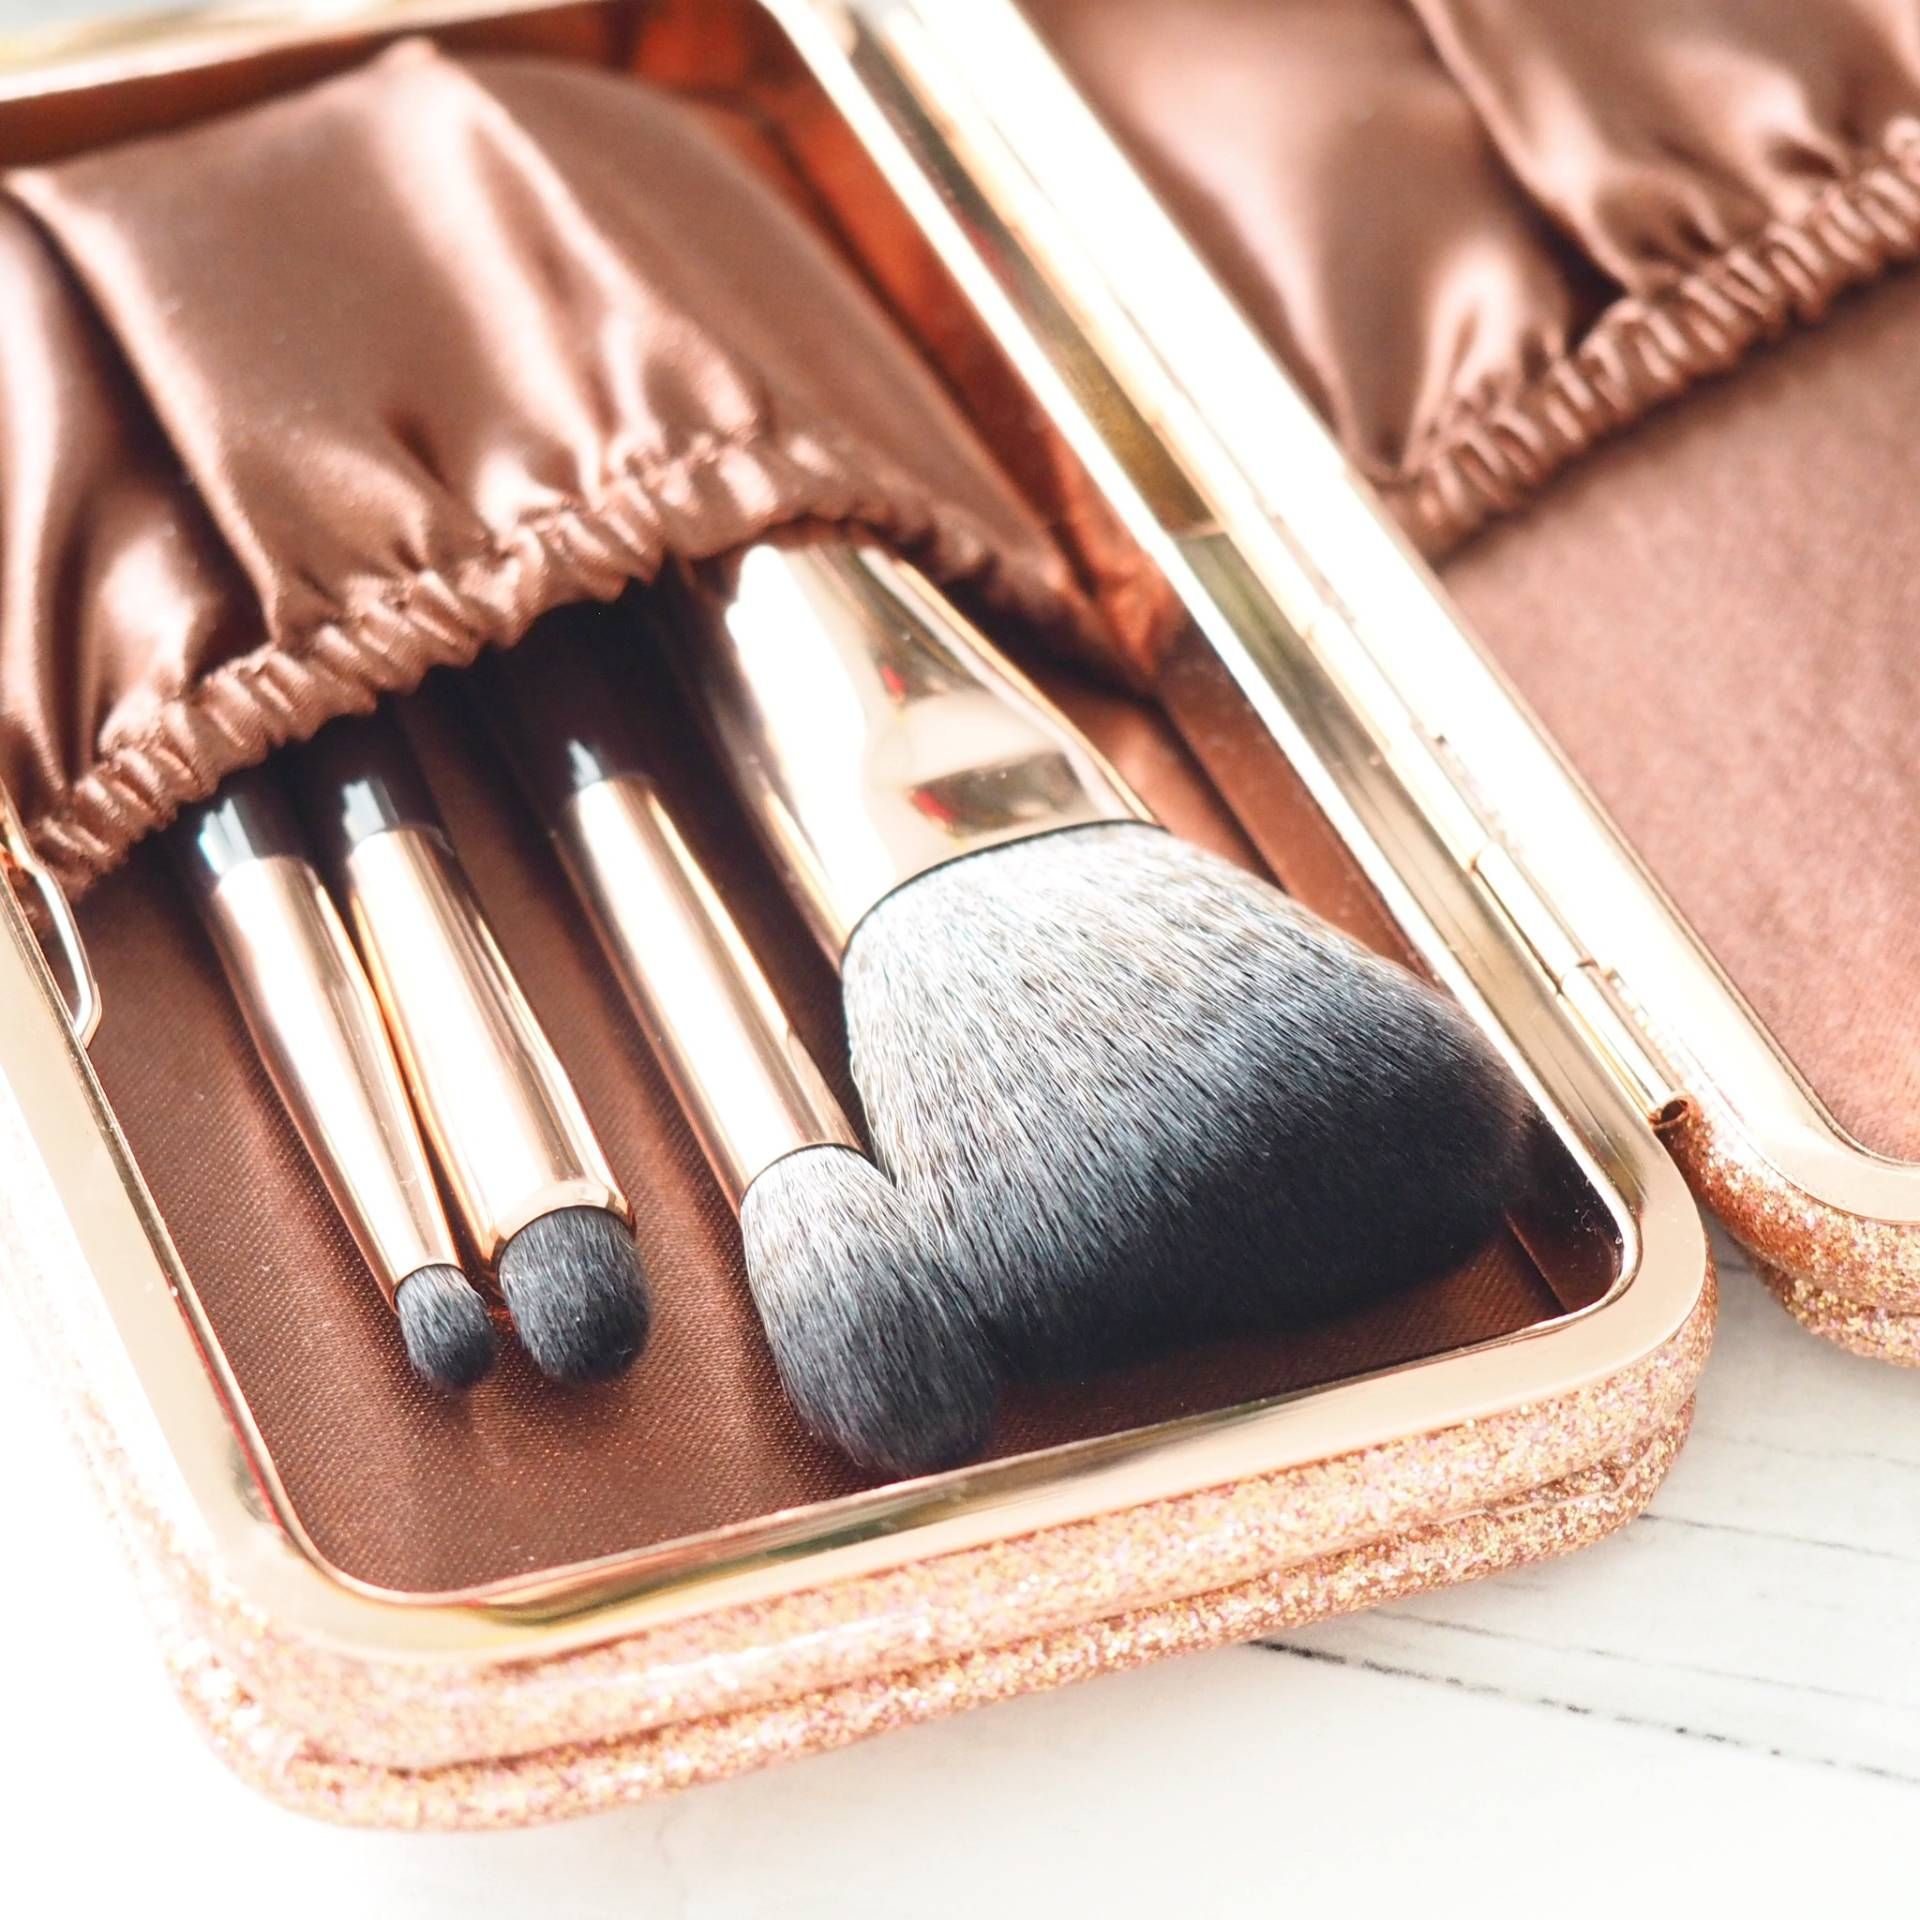 Pin on Charlotte Tilbury House of Paper Doll Photos